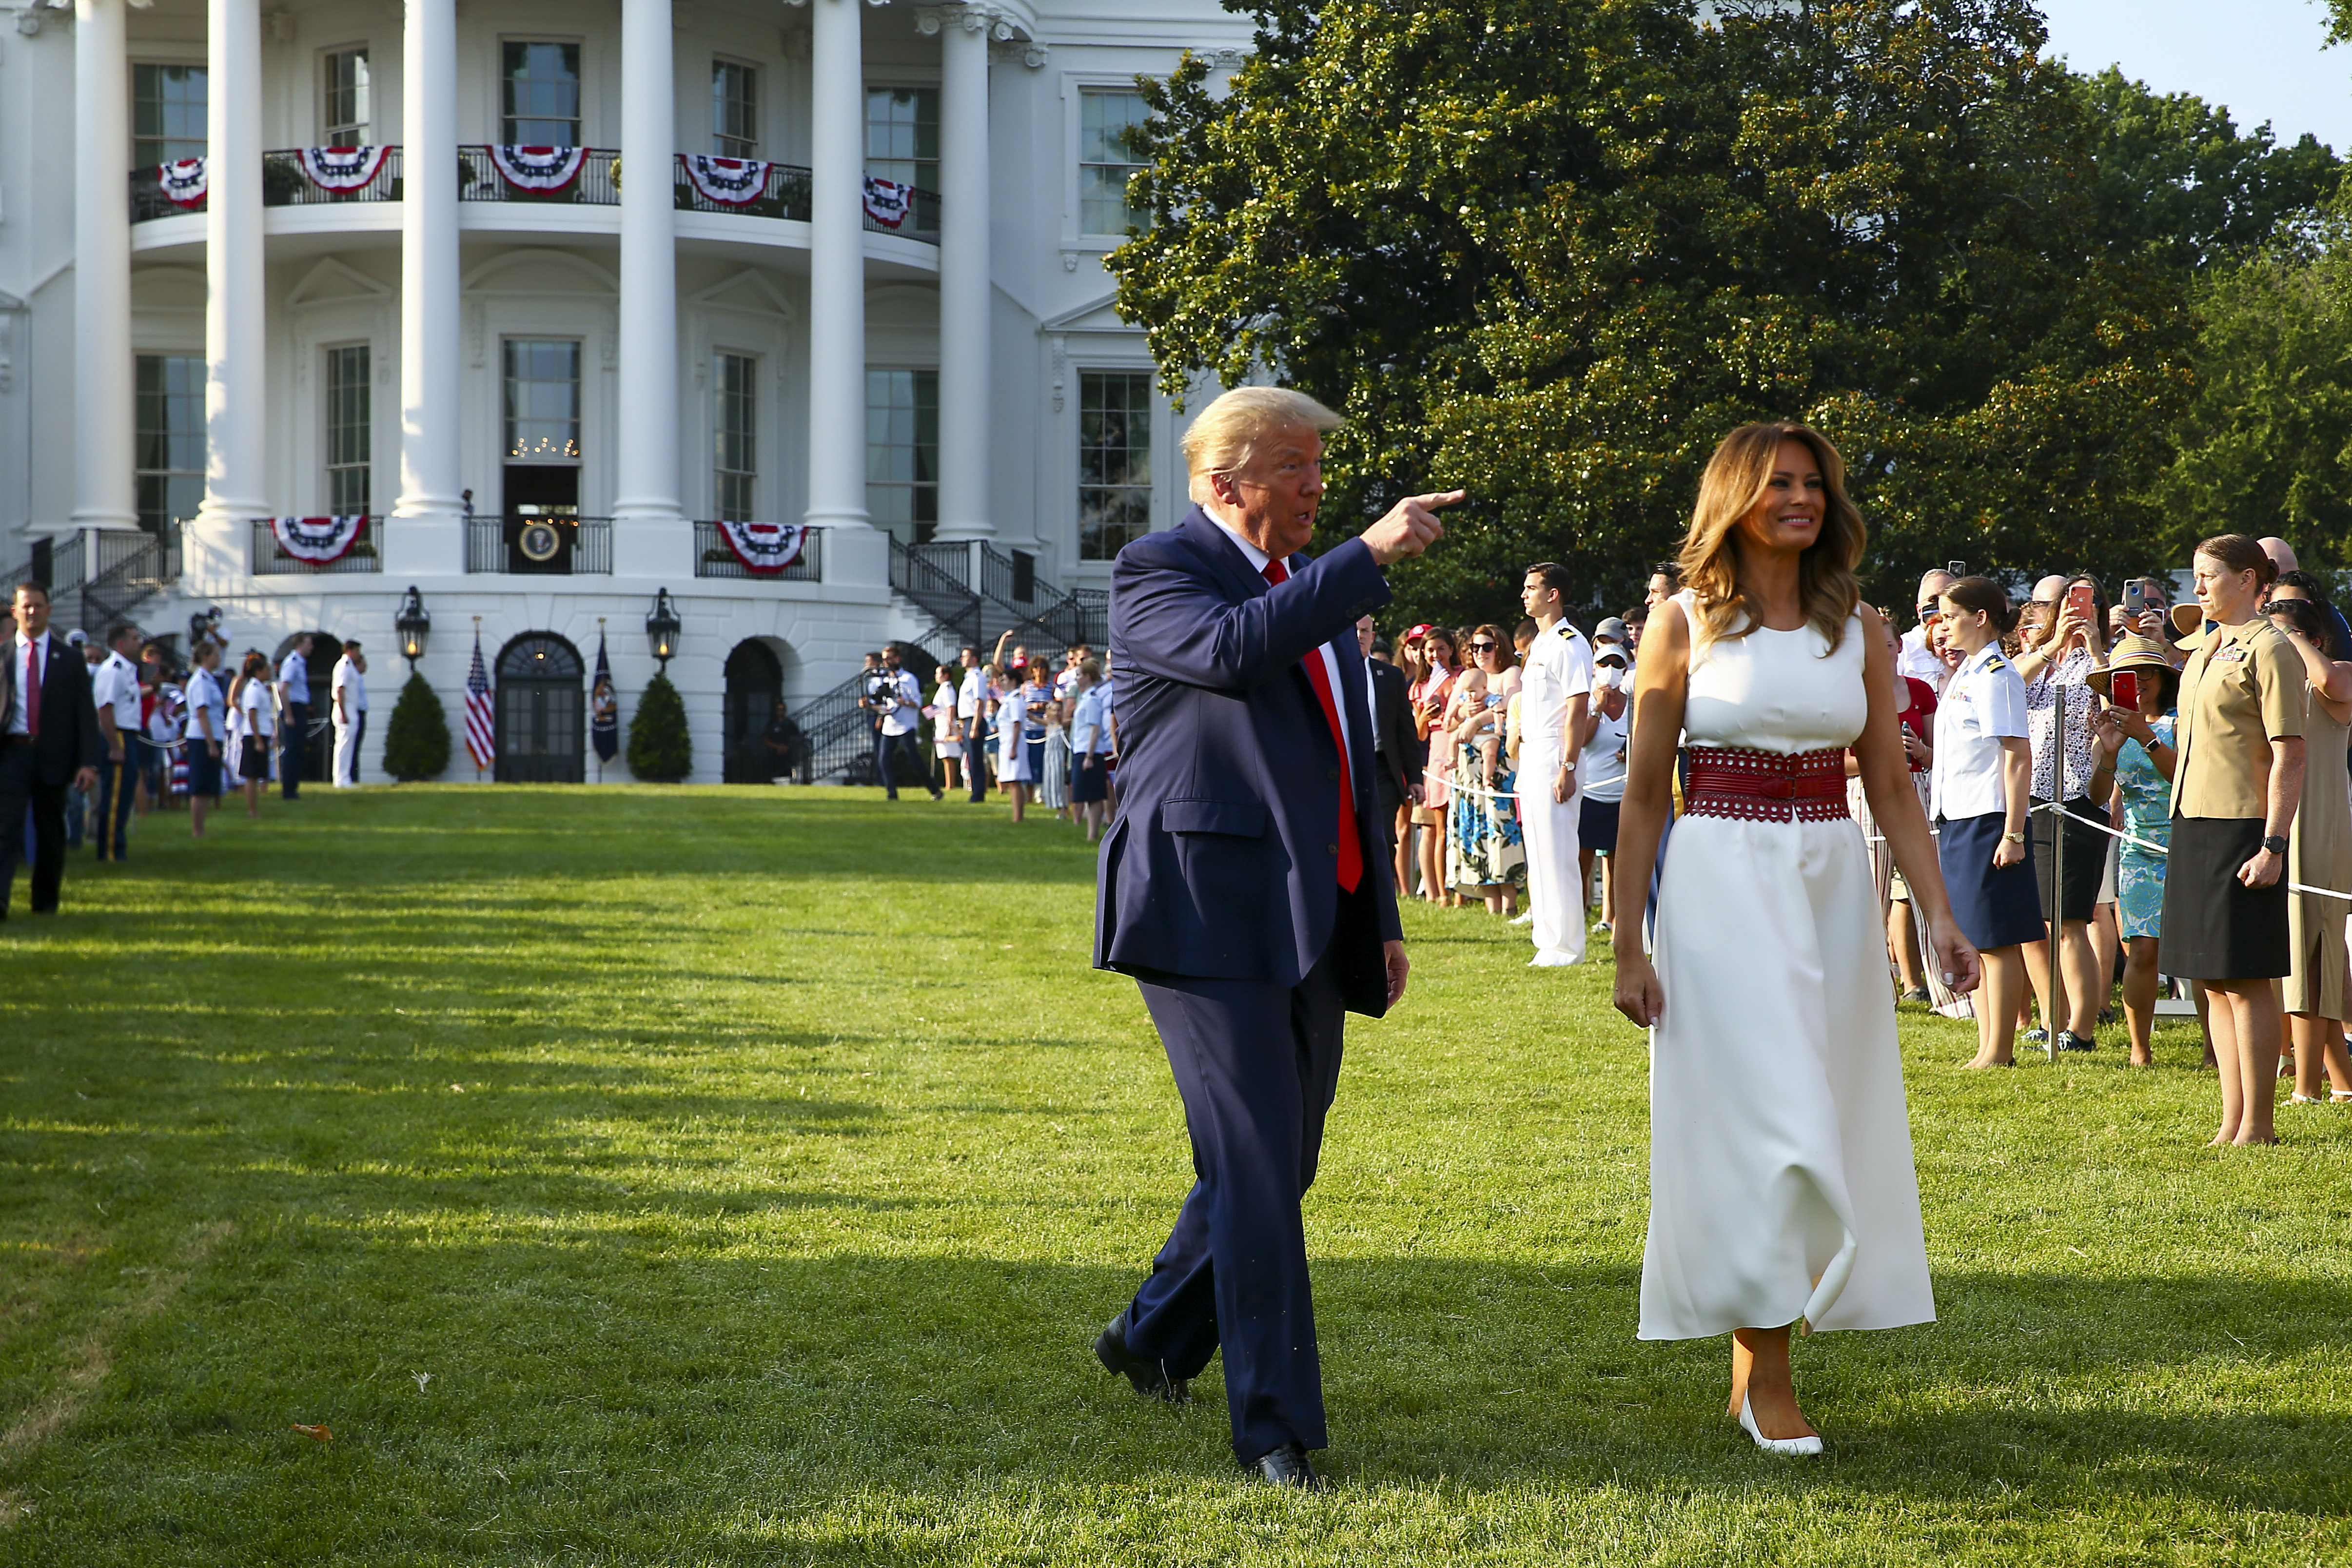 """WASHINGTON, DC - JULY 04: President Donald Trump and first Lady Melania Trump walk out to an event on the South Lawn of the White House on July 04, 2020 in Washington, DC. President Trump is hosting a """"Salute to America"""" celebration that includes flyovers by military aircraft and a large fireworks display. (Photo by Tasos Katopodis/Getty Images)"""